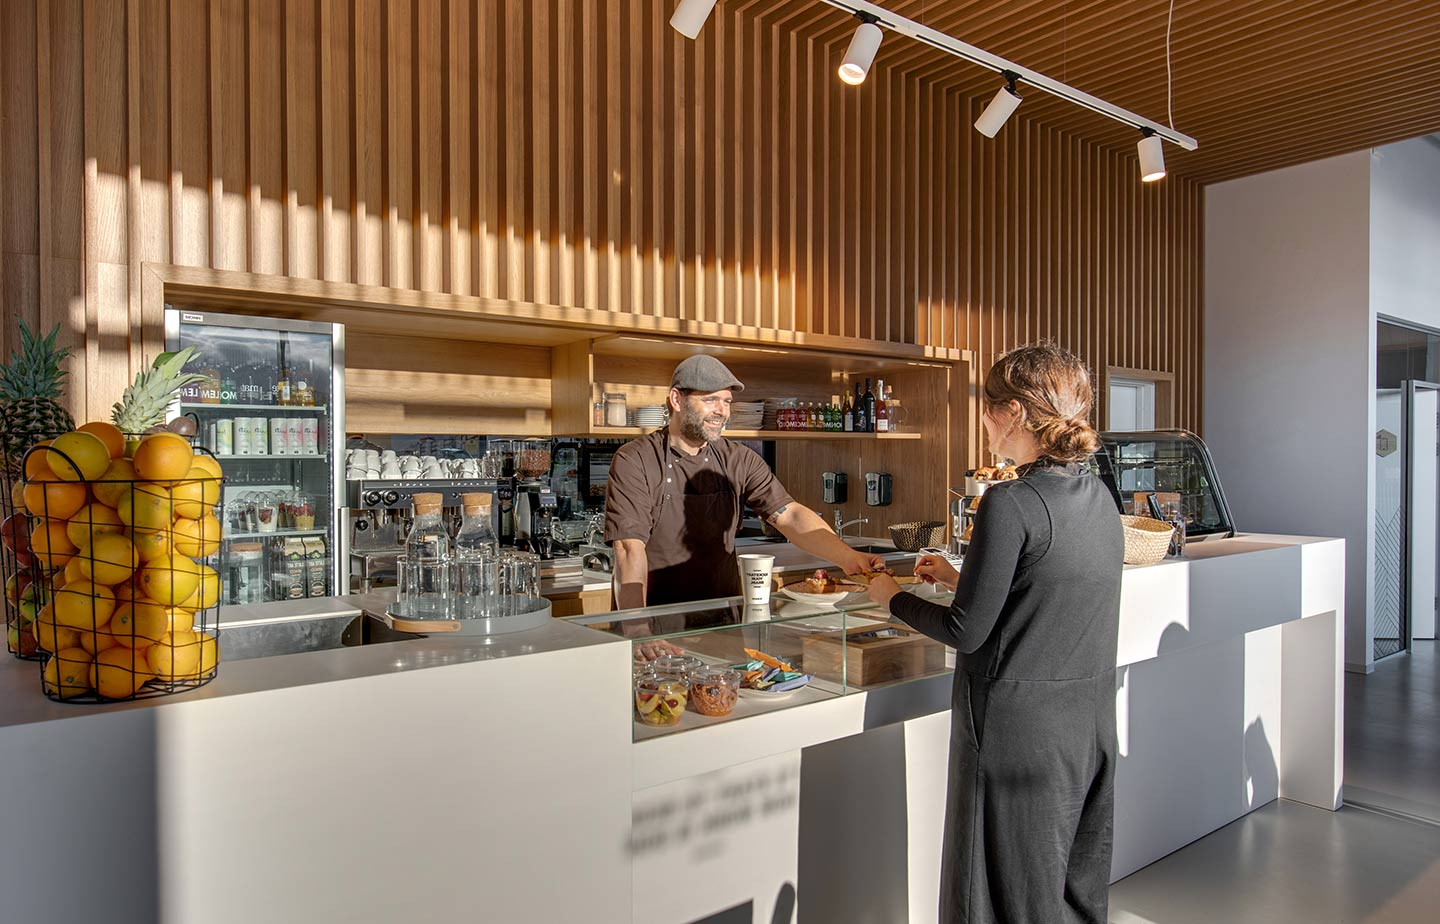 coffee bar with a woman ordering coffee from a man